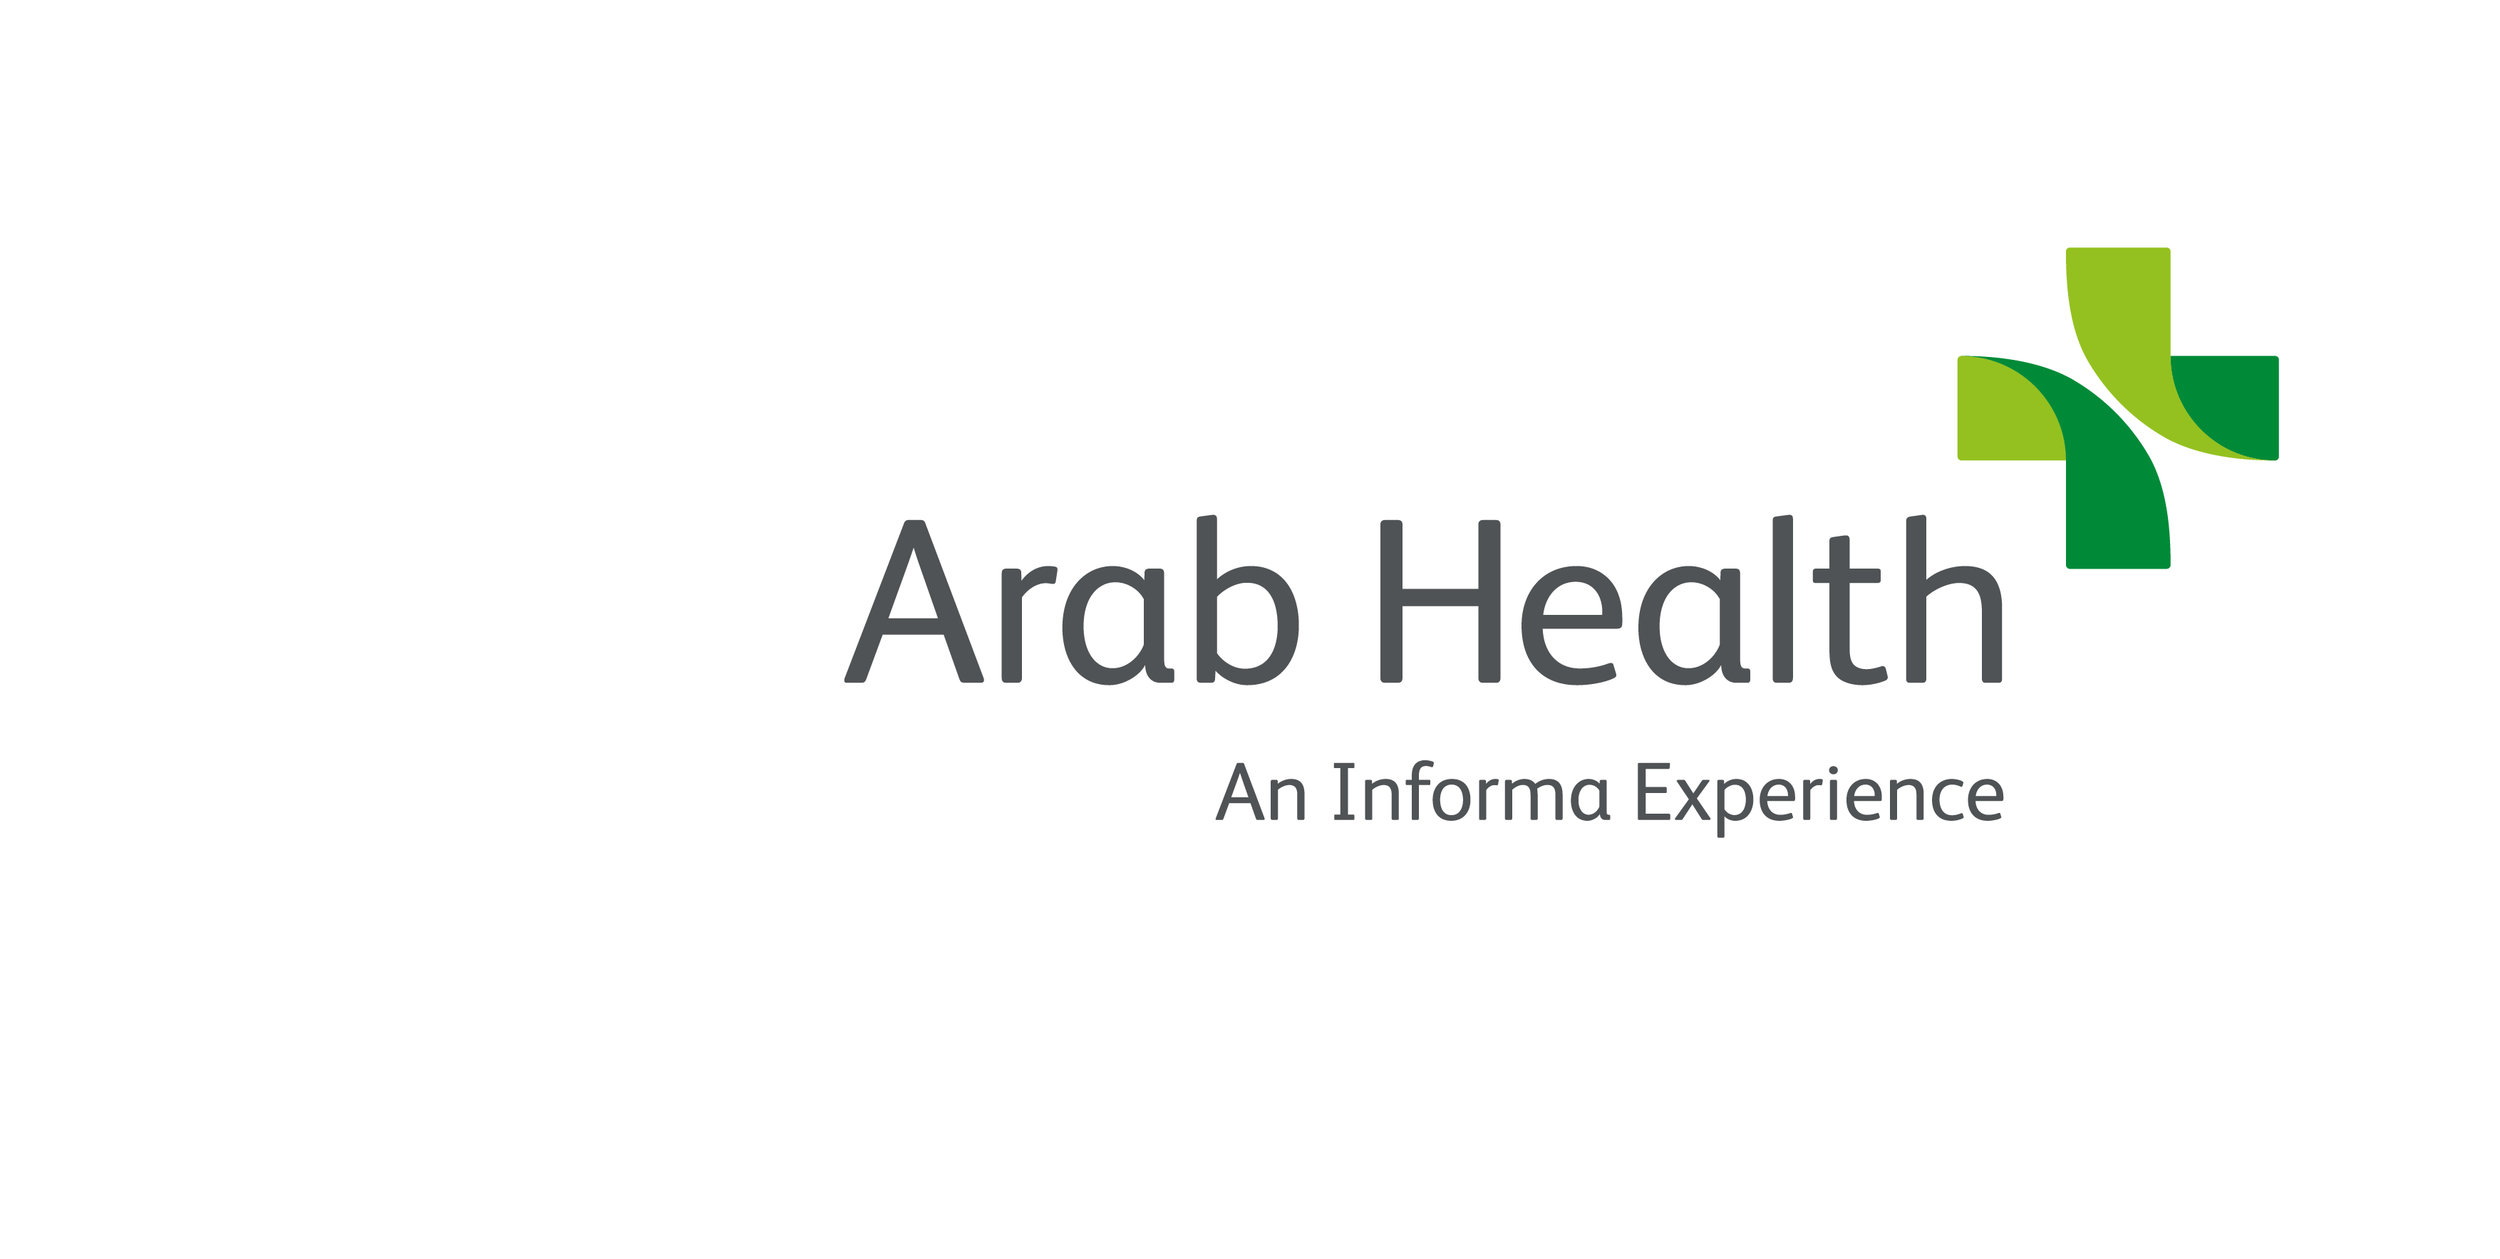 Arab_Health_RGB.jpg